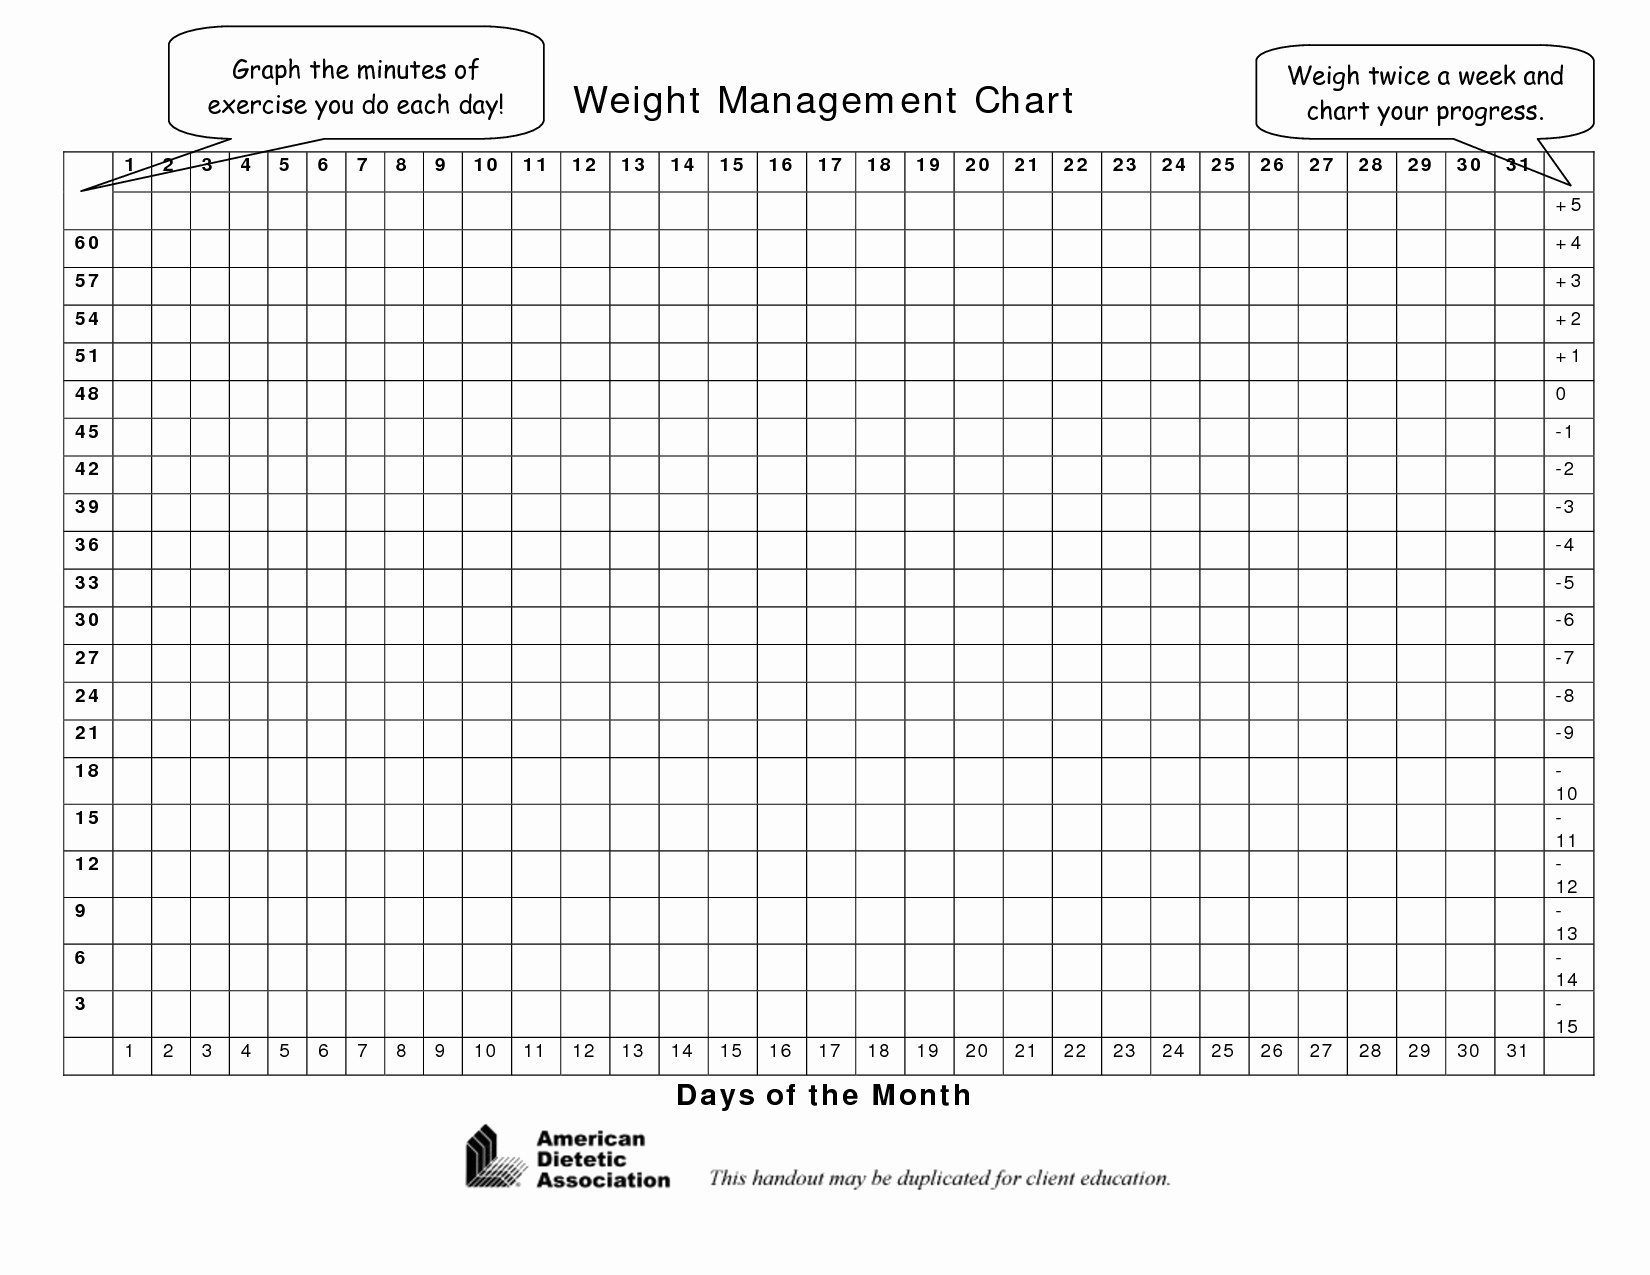 Weight Loss Graph Printable | Ellipsis - Free Printable Weight Loss Tracker Chart